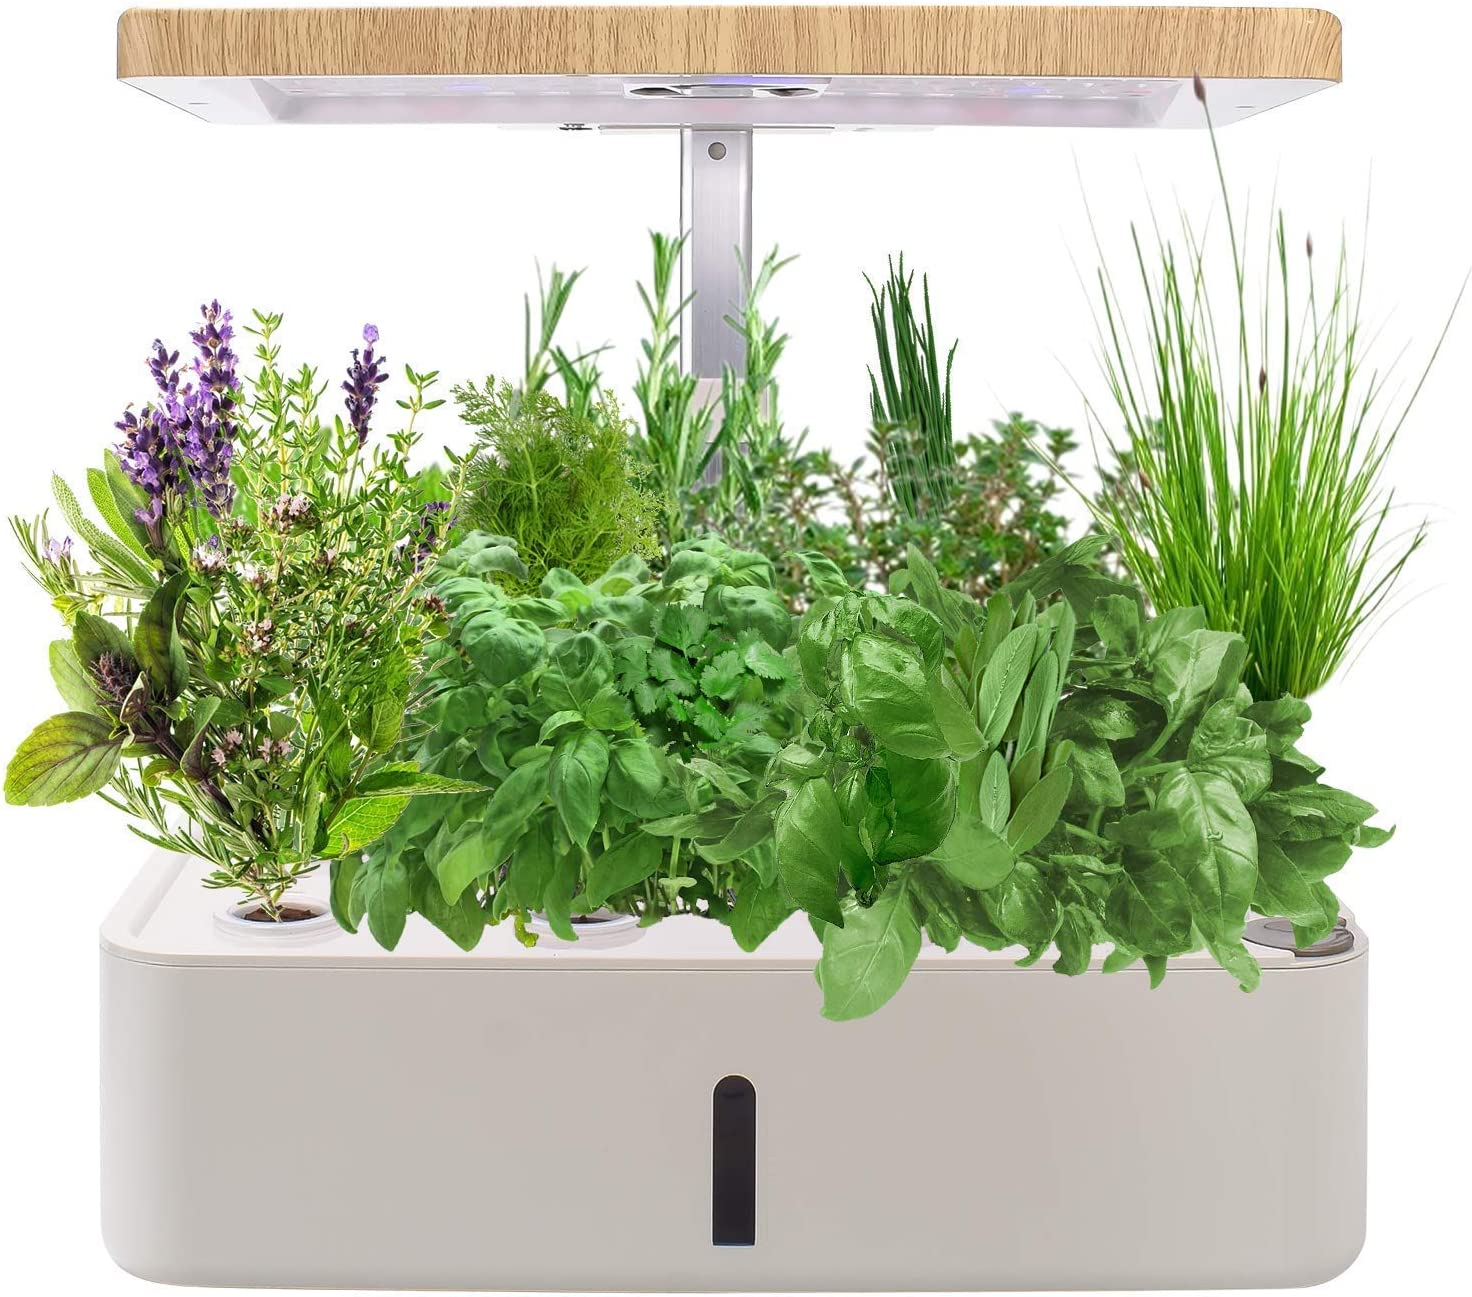 KORAM Hydroponics Growing System Kit for Indoor Gardening, Smart LED Plant Grow Light Germination Kits for Home Kitchen Planting 12 Pots (Nutrient & Seeds Not Included)